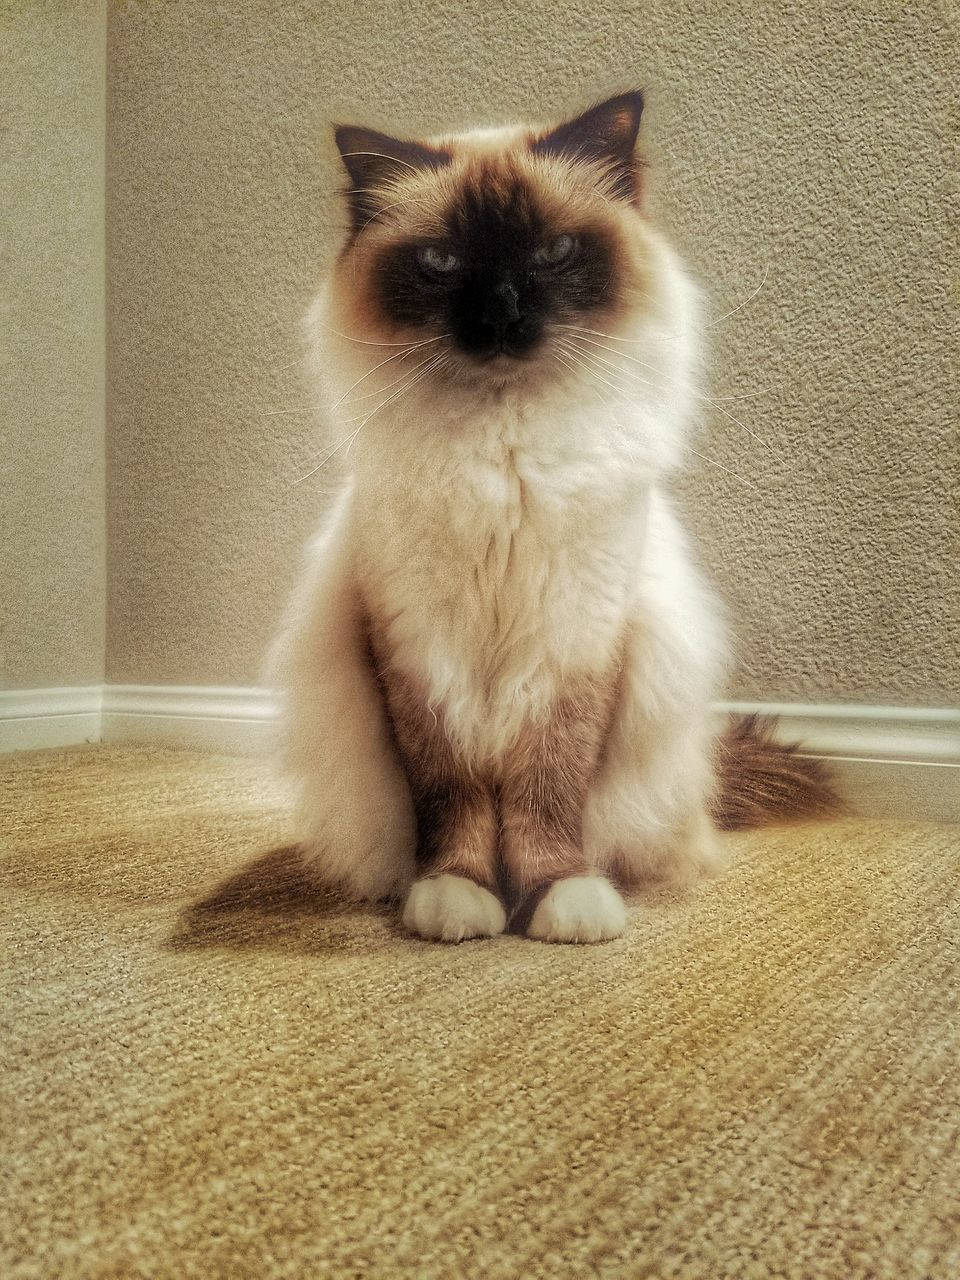 domestic cat, pets, one animal, domestic animals, feline, animal themes, mammal, indoors, sitting, whisker, home interior, portrait, no people, full length, looking at camera, persian cat, day, siamese cat